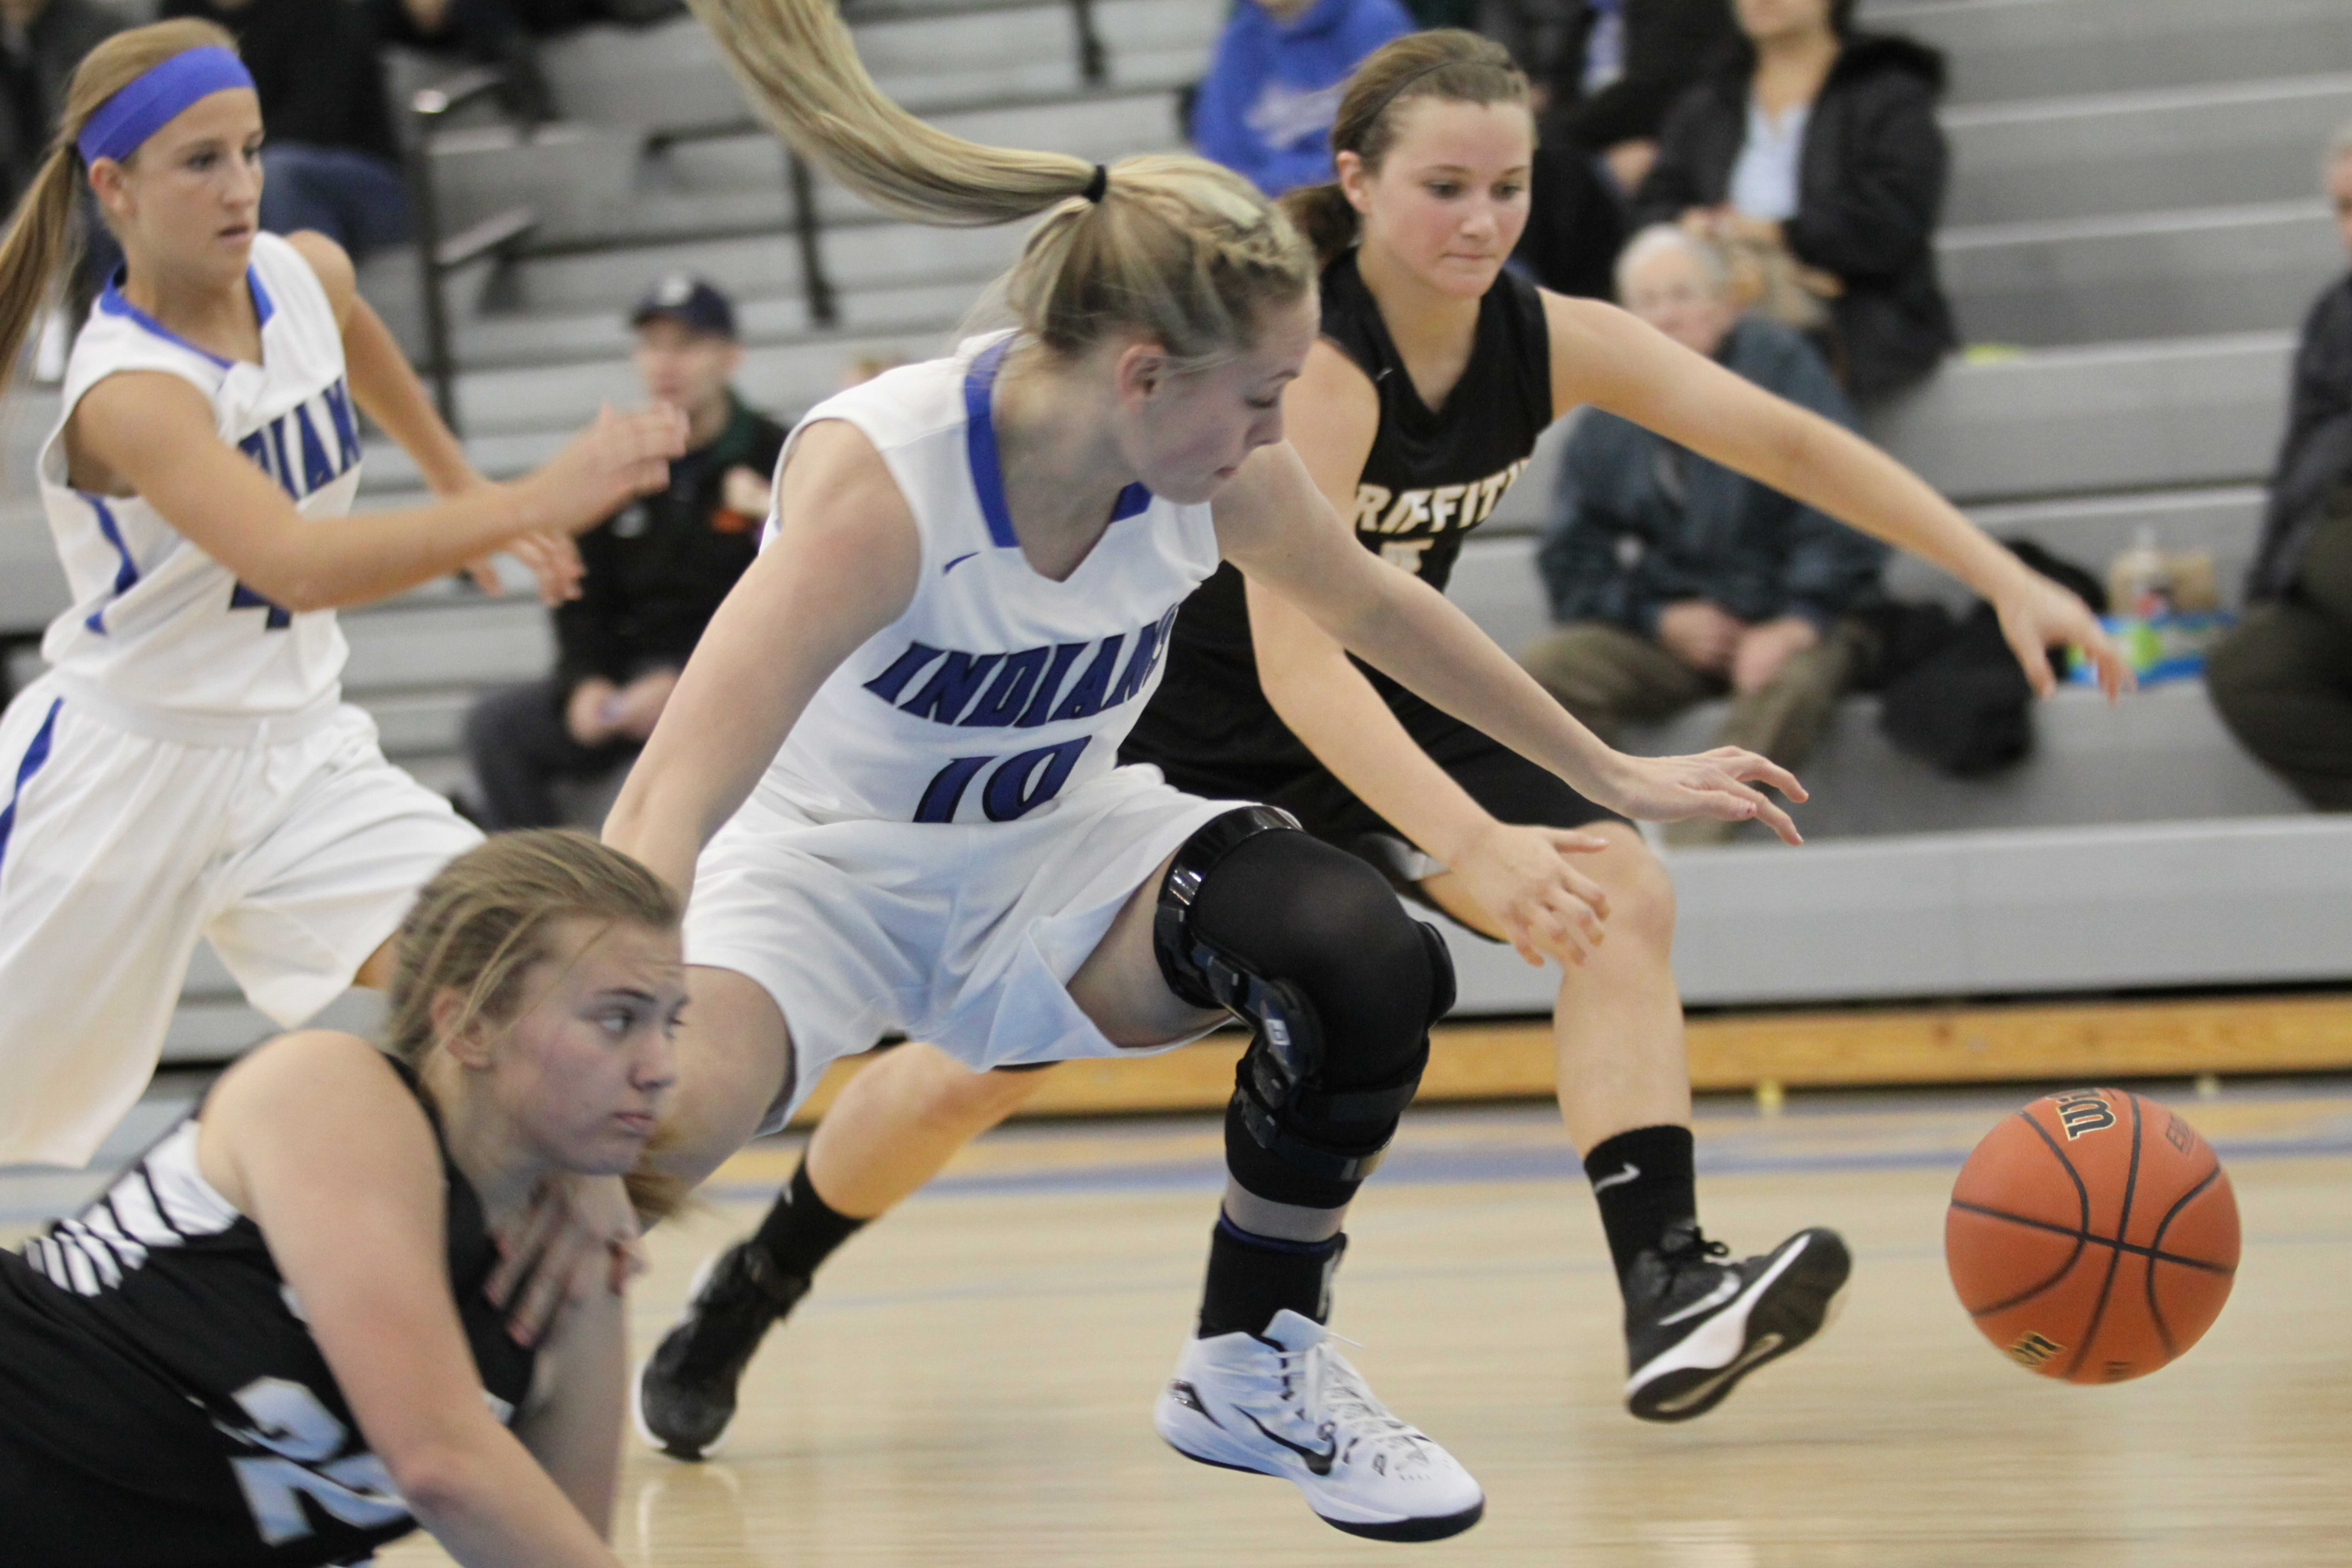 As Megan Krol (12) looks on, Rachel Bell (11) dives for the ball. Bell scored six points in her first game back from her ACL injury.